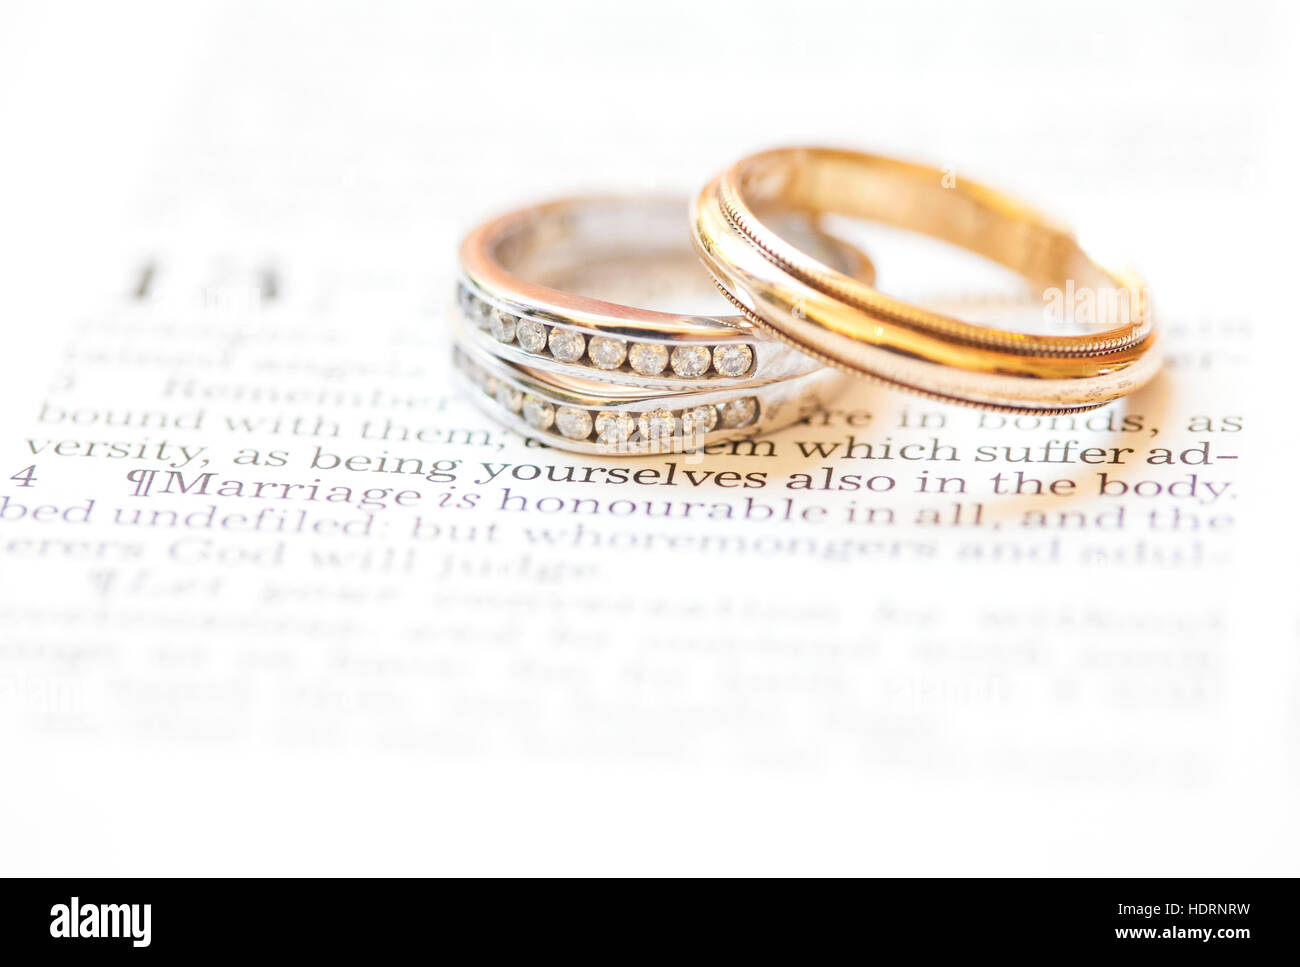 Wedding bands placed over the scripture Hebrews 13:4; Waco, Texas, United States of America - Stock Image